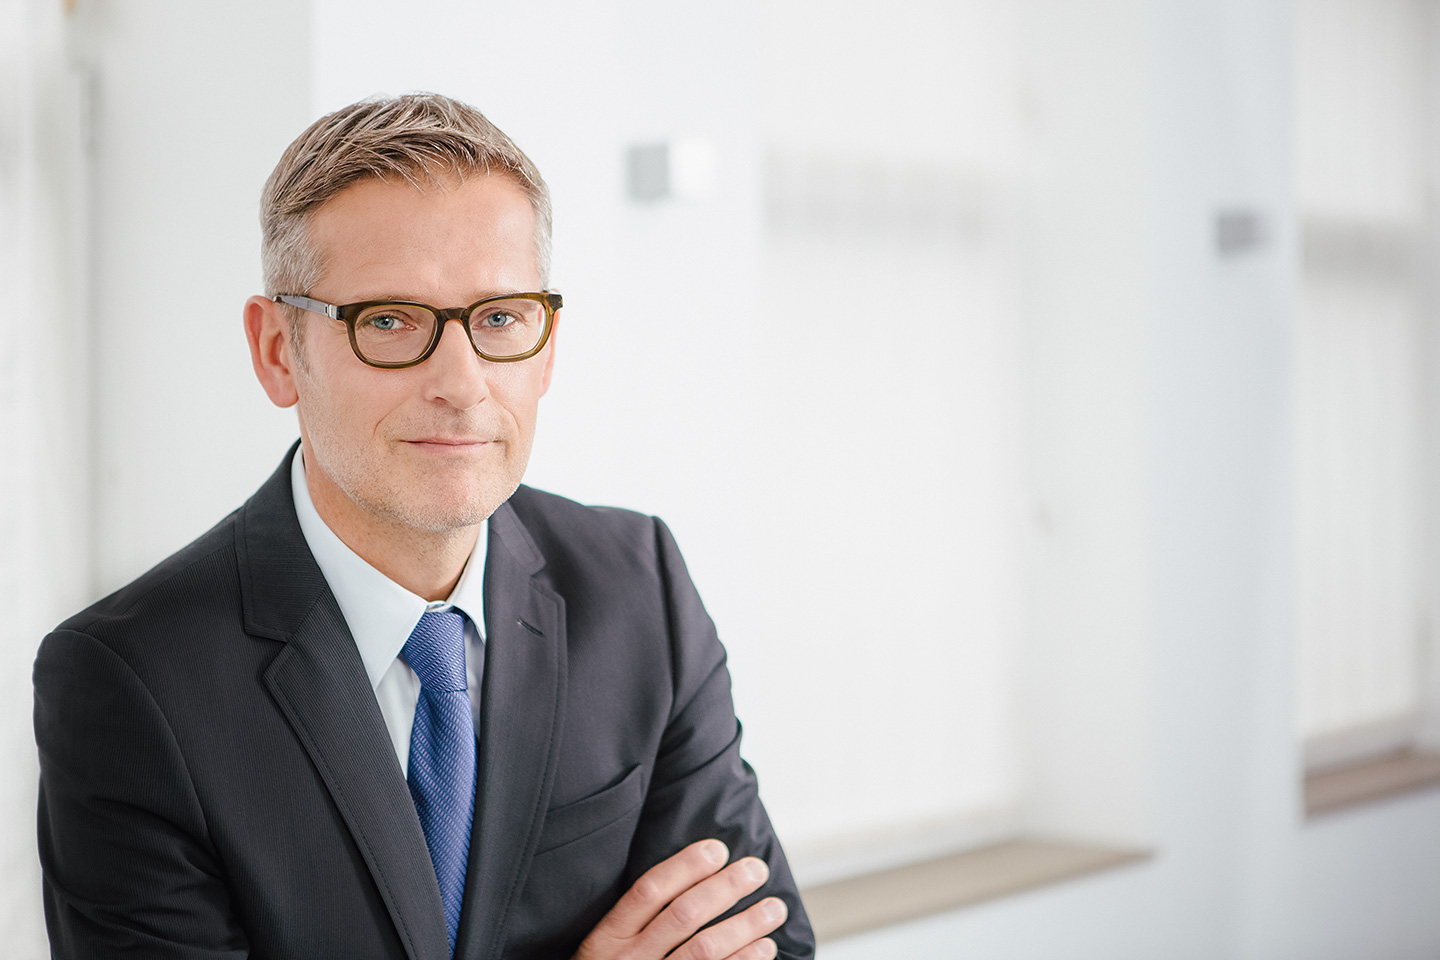 Corporate Foto von Dr. J. Severin in Dortmund